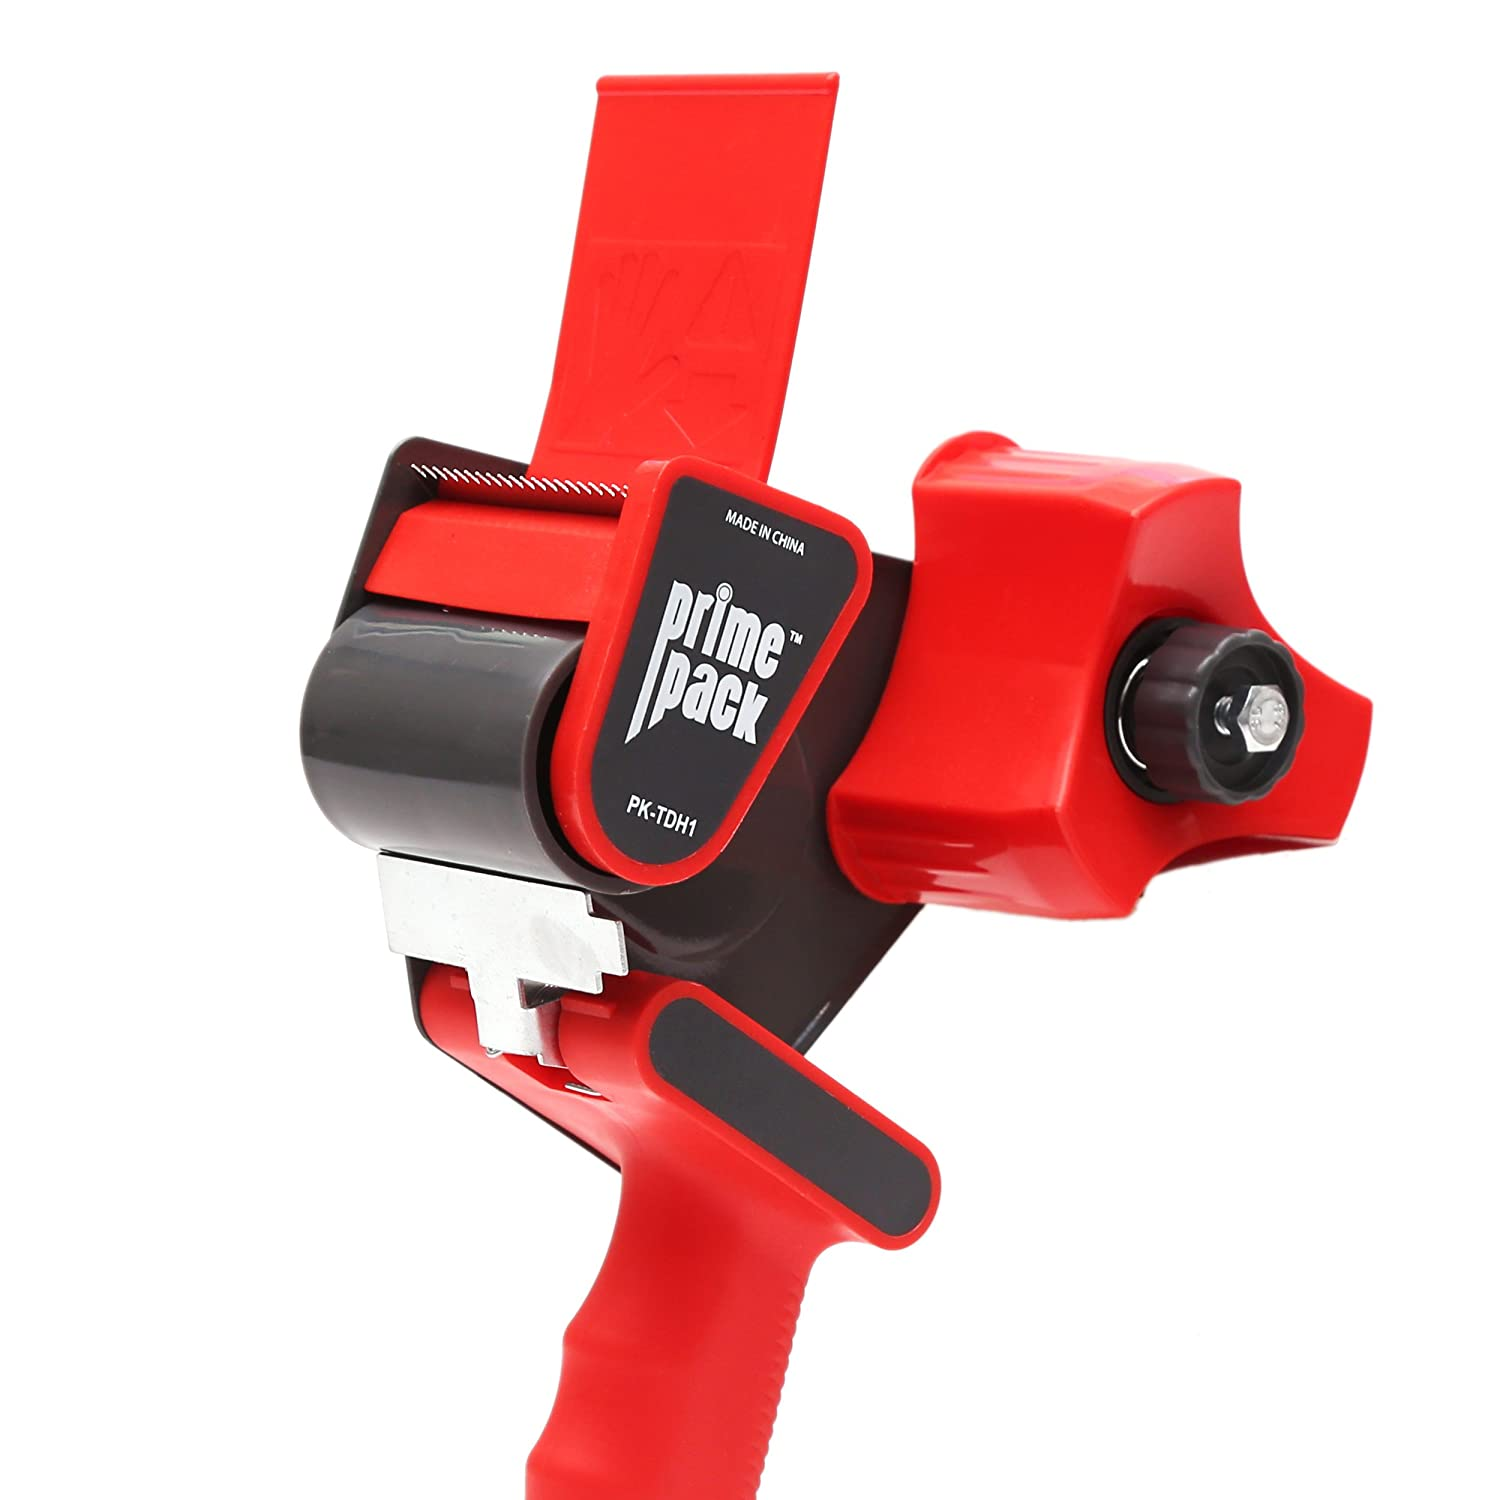 PRIMEPACK Packing Tape Dispenser Gun | Industrial Quality Metal Housing - Easy Side Loading Design - Durable and Ergonomic for Shipping, Packaging and Moving GRANDEGO